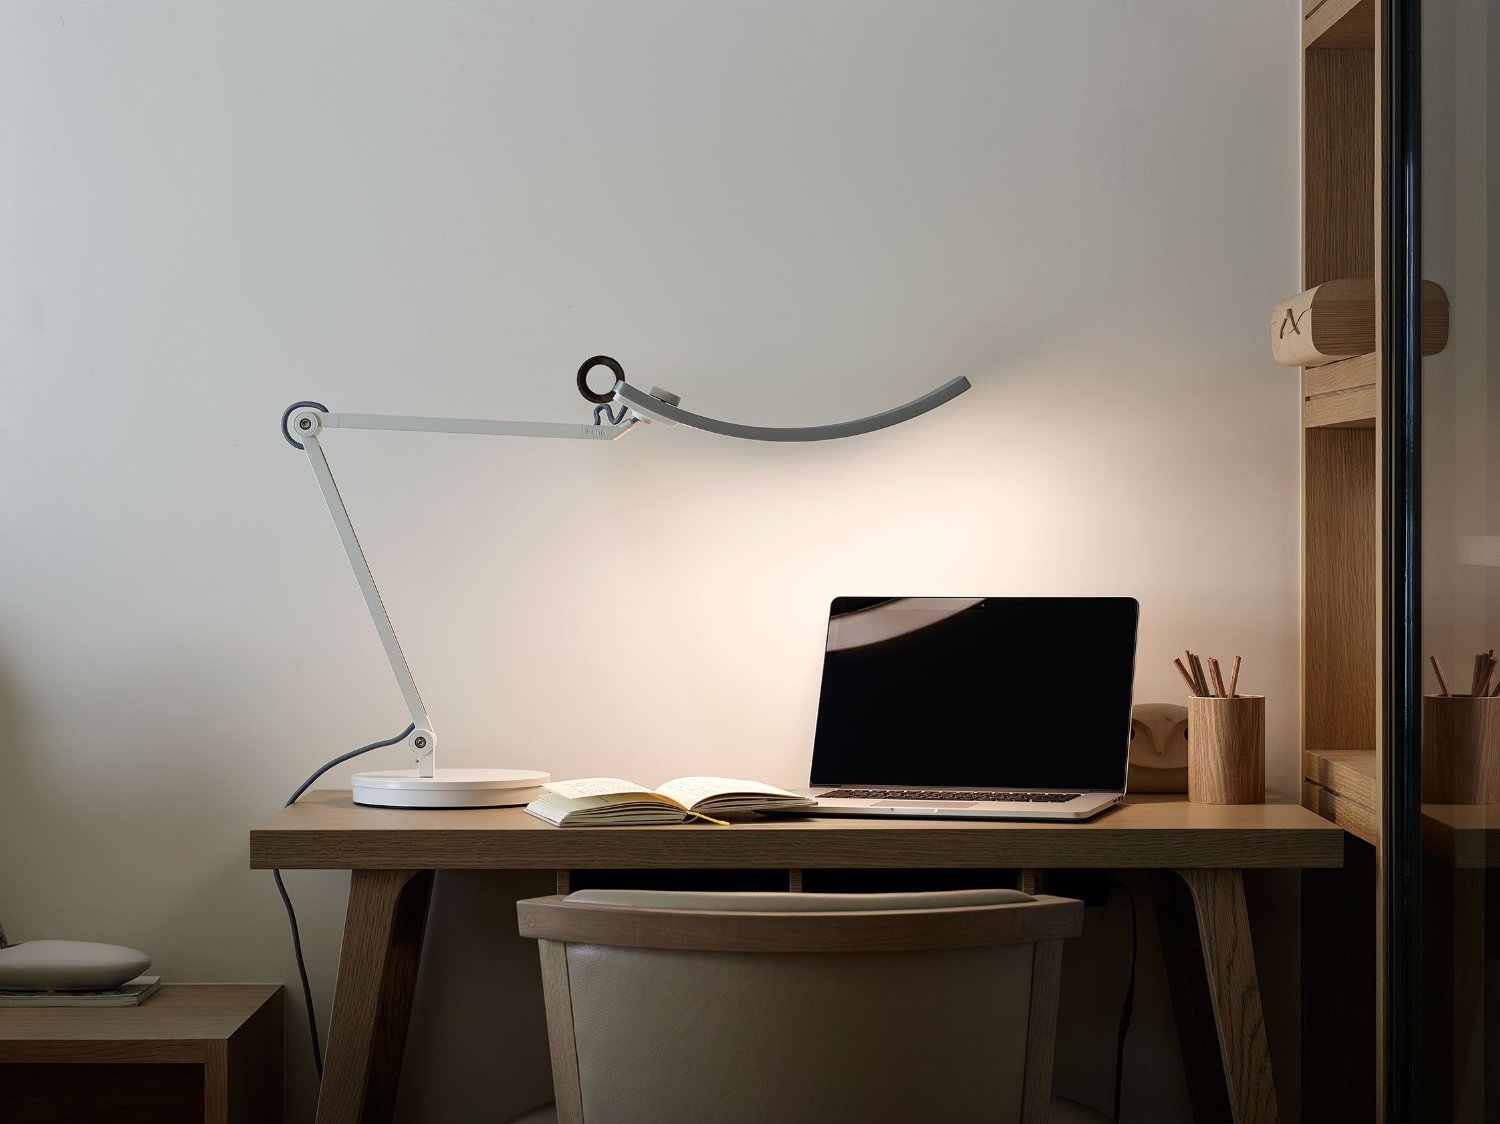 Benq Lamp World S First E Reading Lamp By Benq Benq Candy Crush And